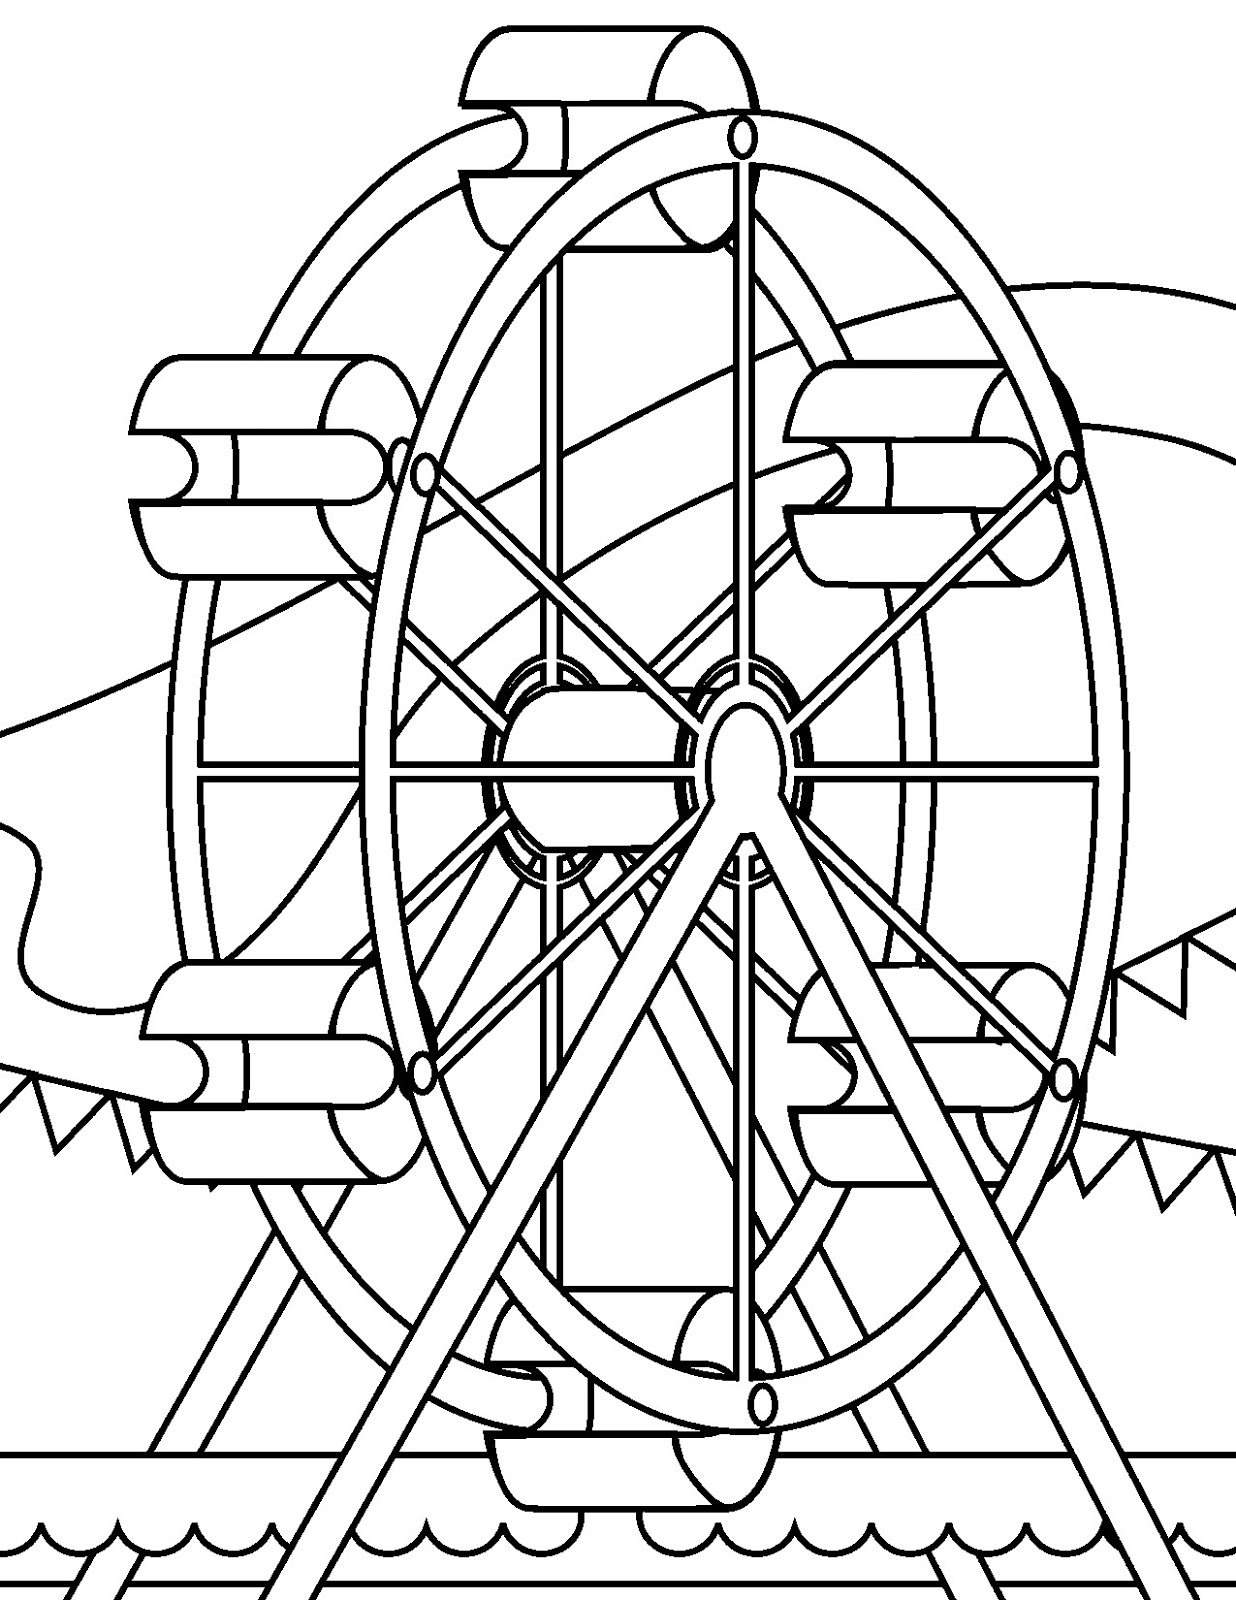 Picture Miscellaneous Coloring Sheets Amusement Park Coloring Pages